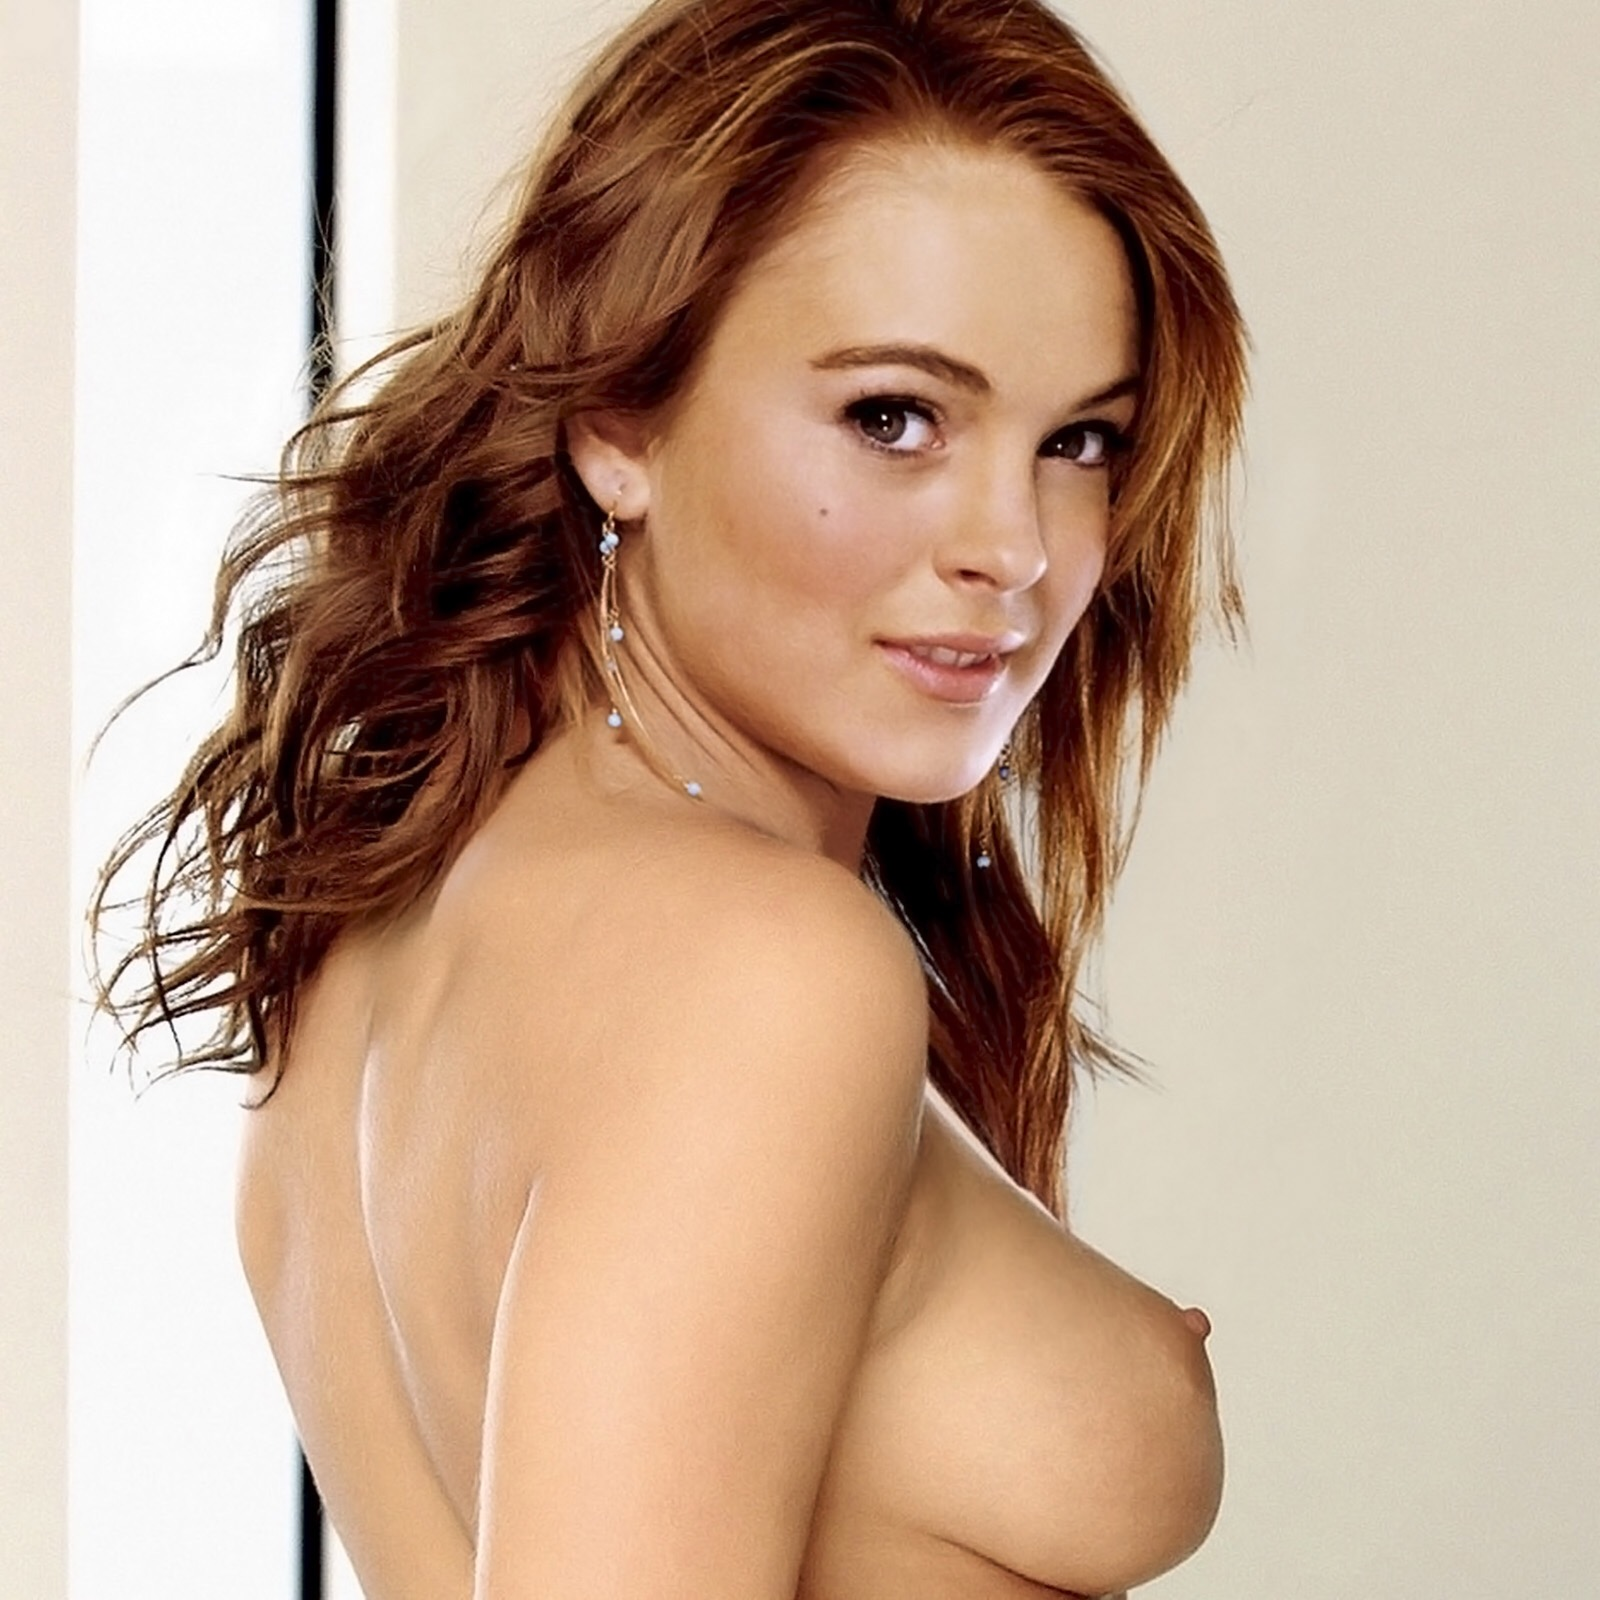 The First Part Of The Lindsay Lohan Porn Picture